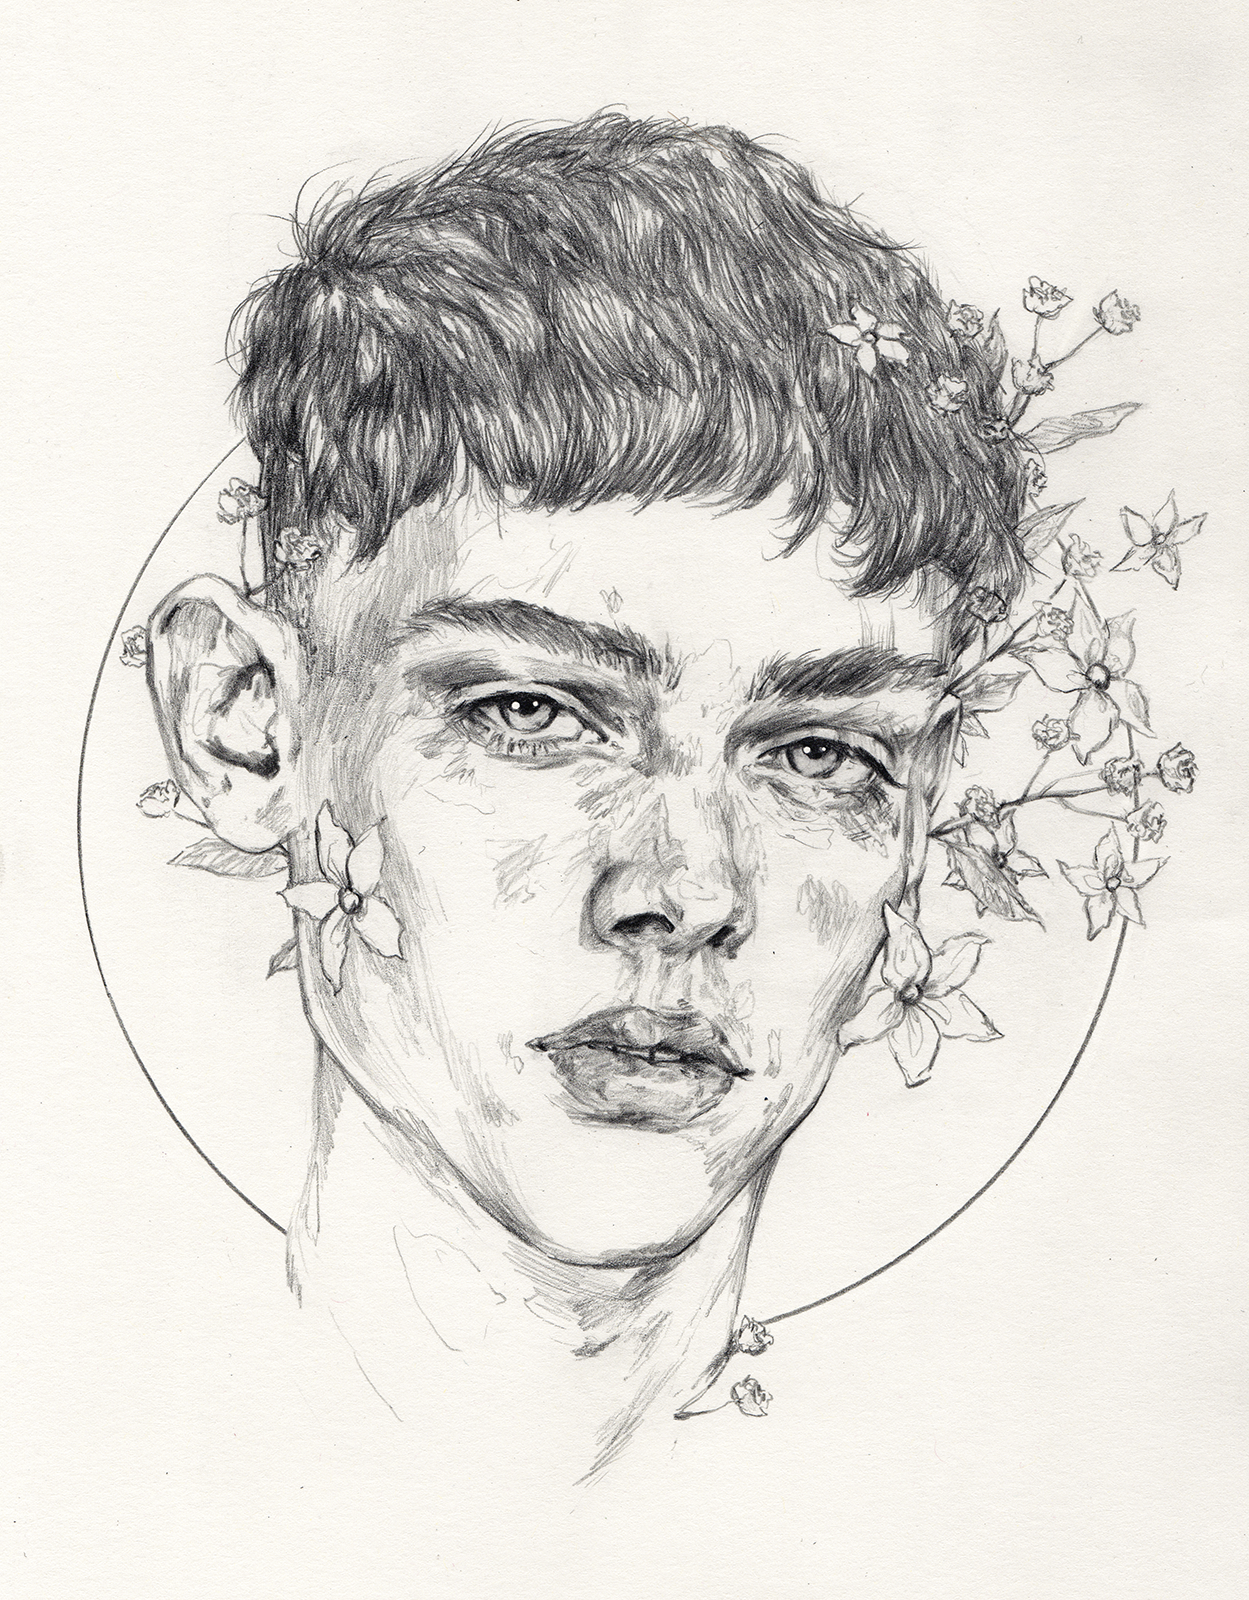 This drawing is now available as a print in my online shop